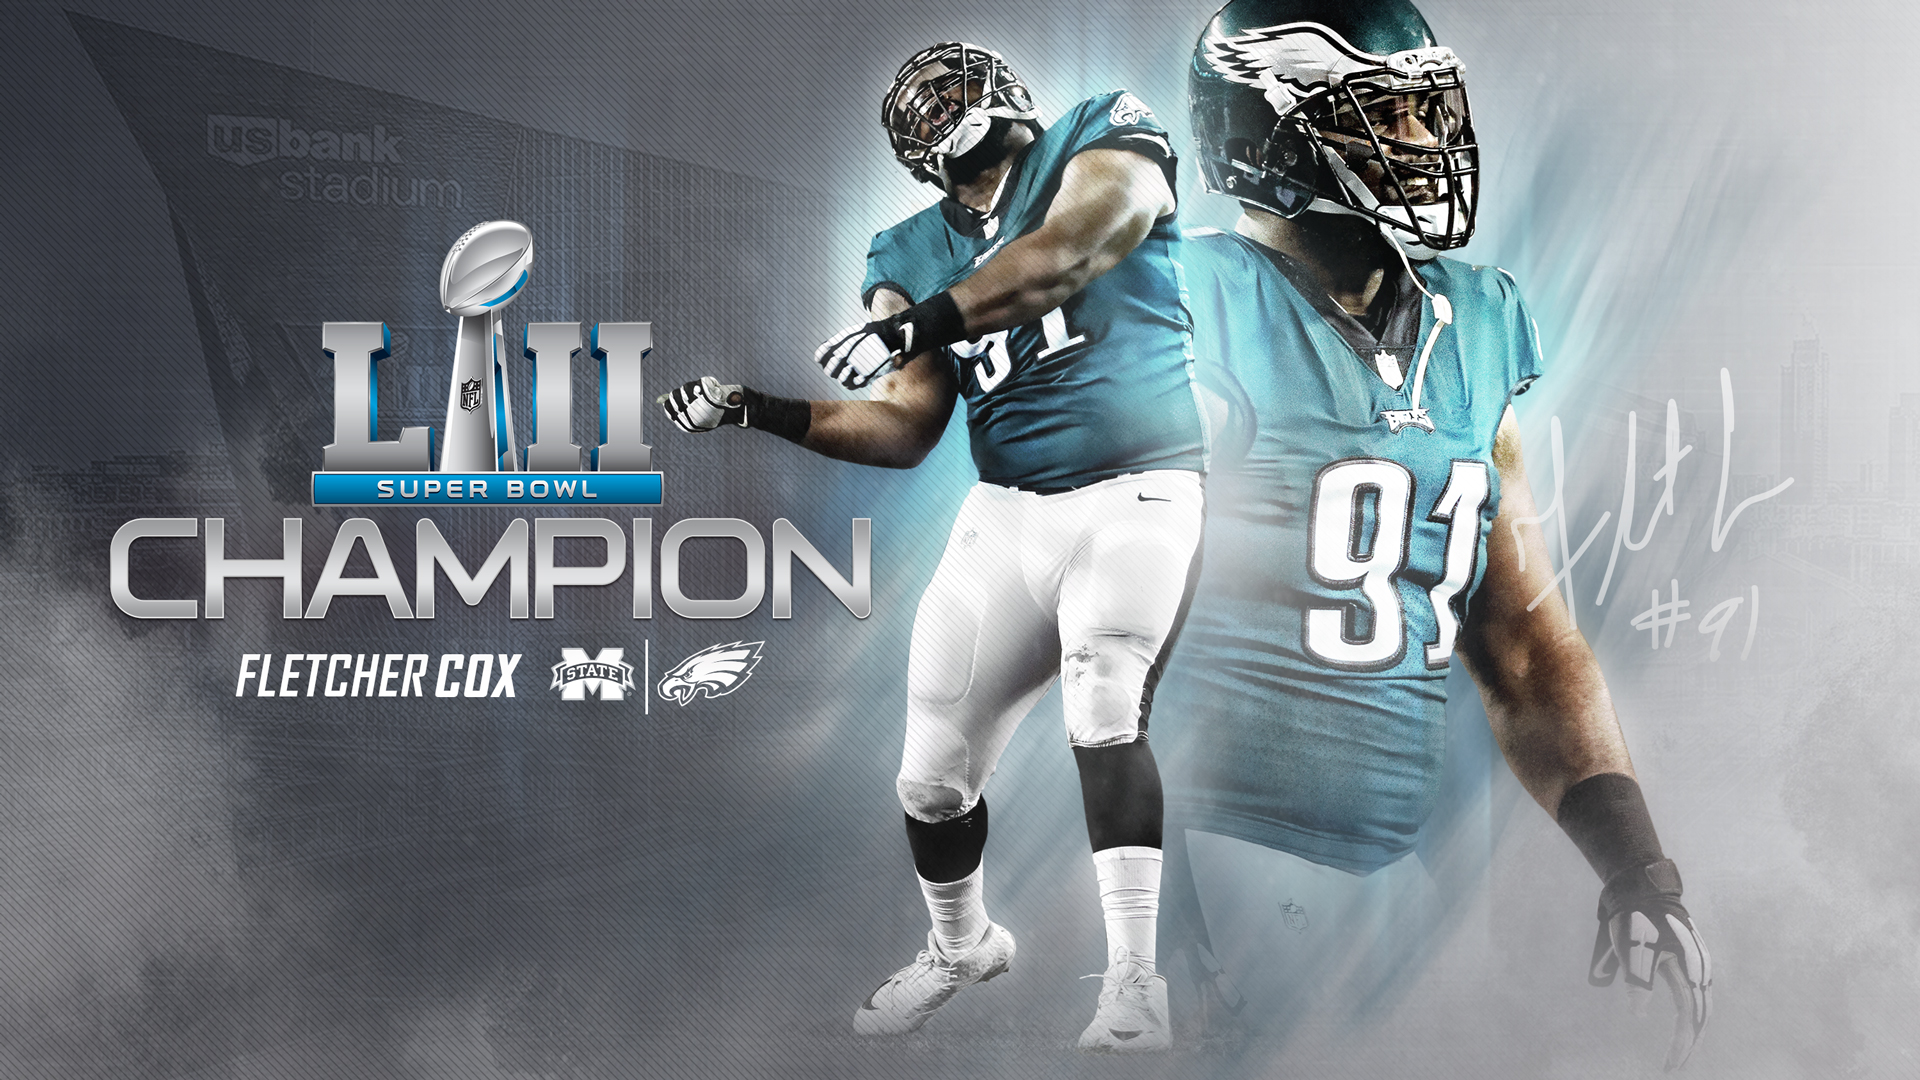 From State to Super Bowl: Fletcher Cox